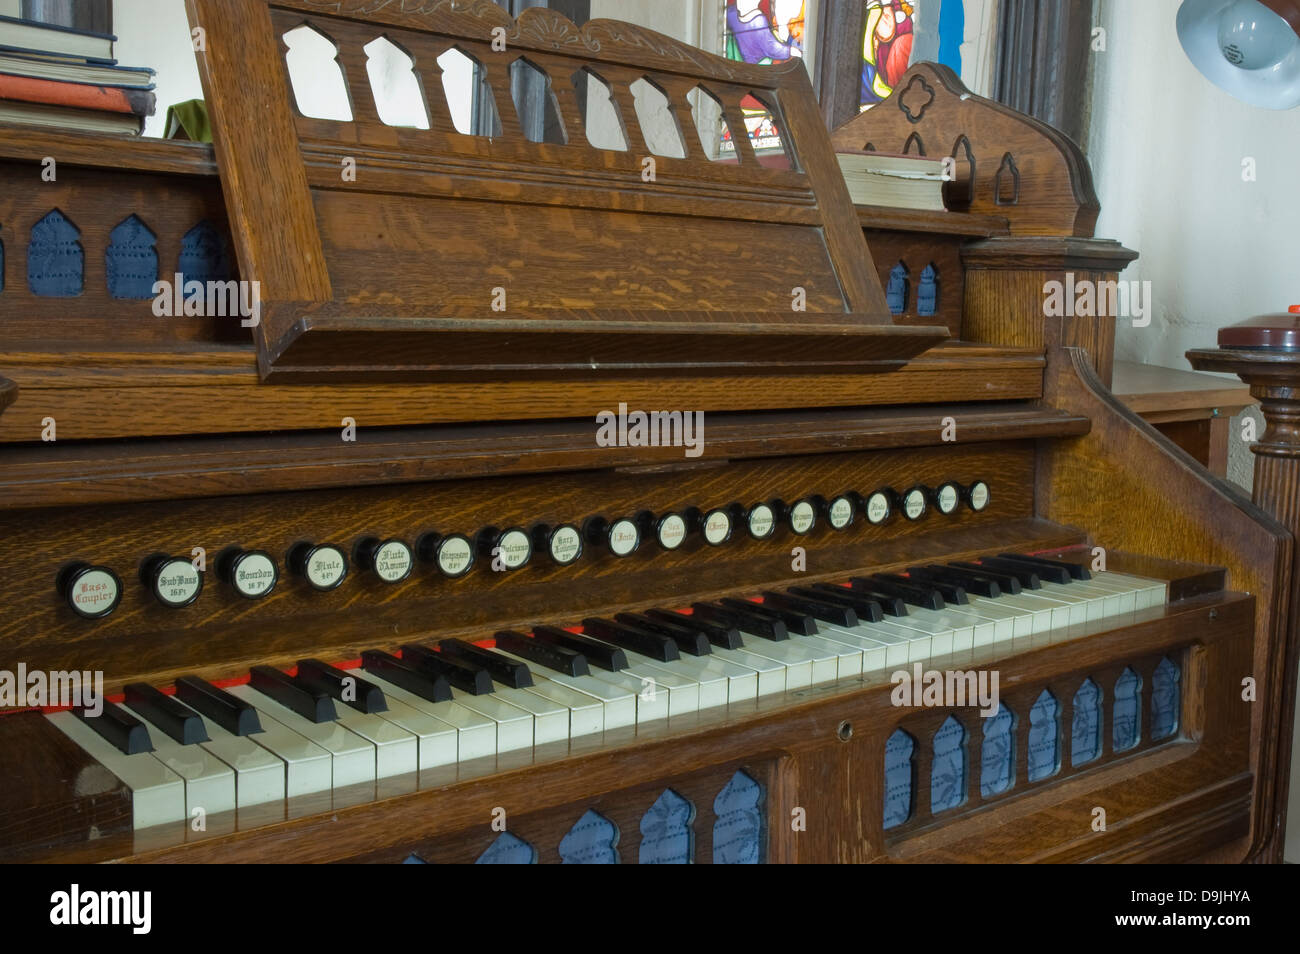 Typical harmonium or pump organ found in many churches - Stock Image